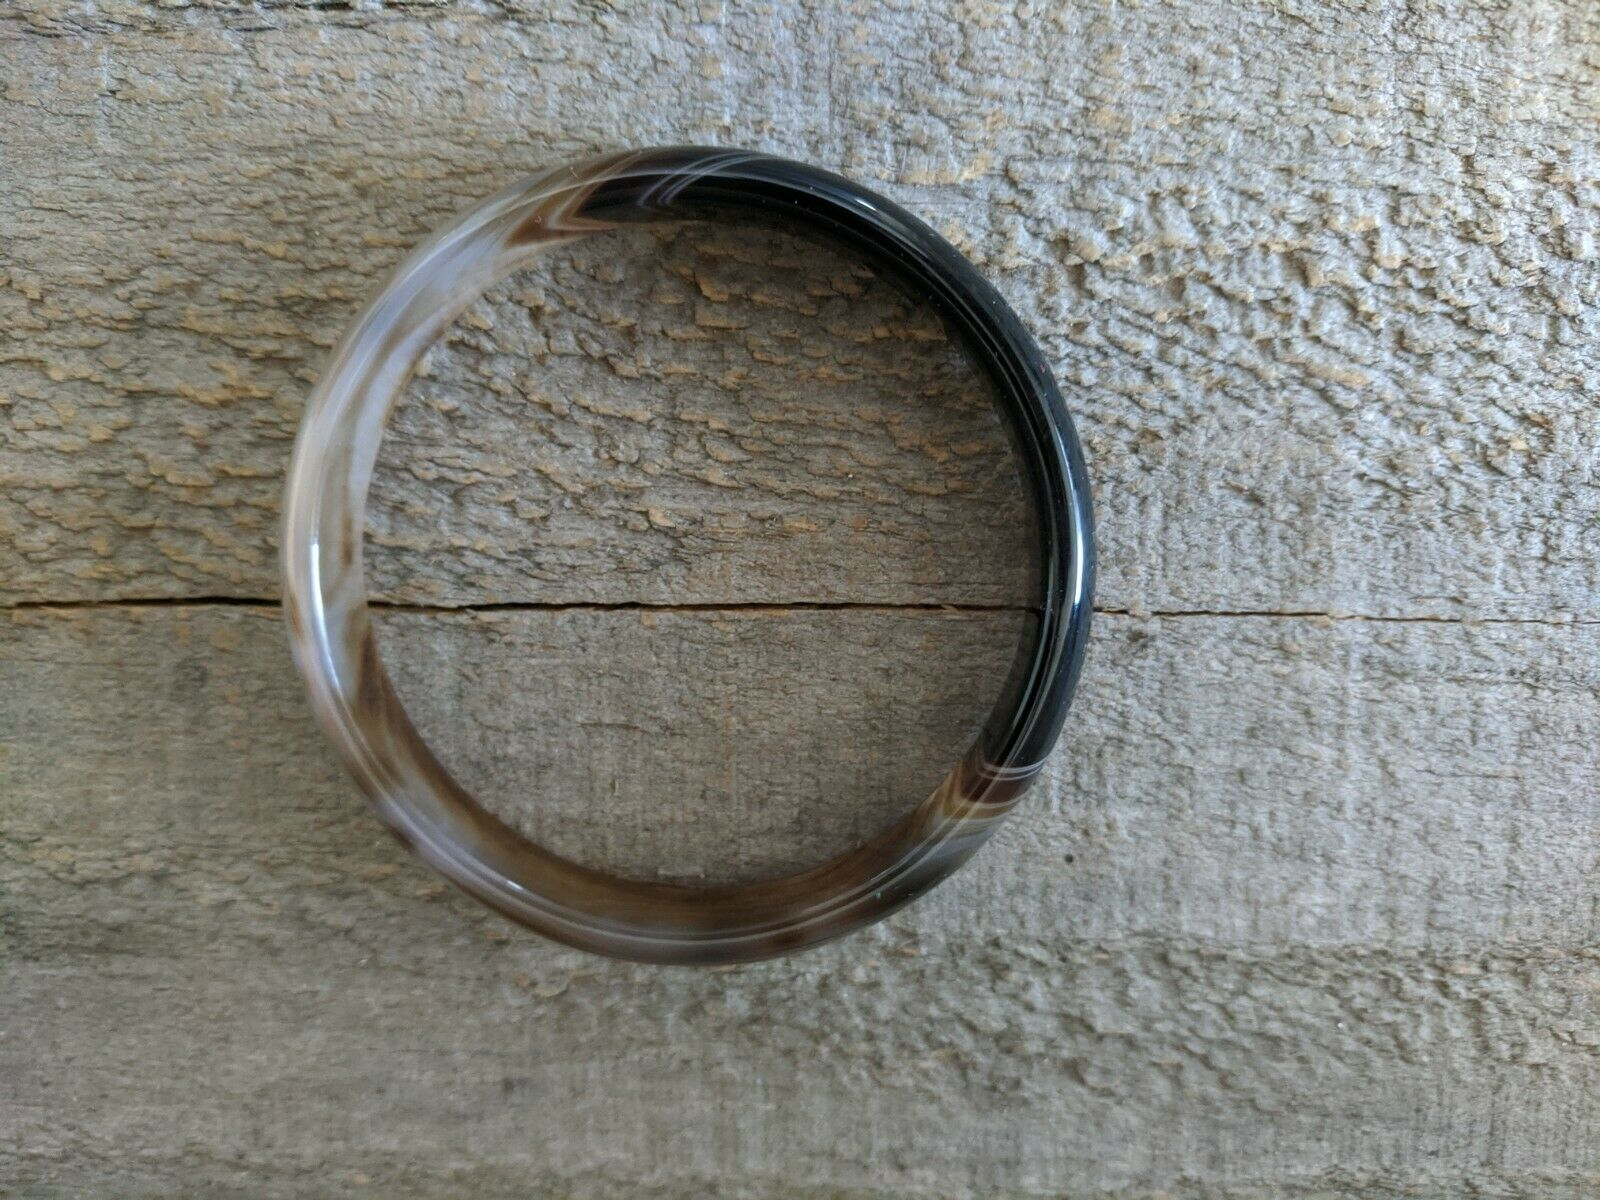 Natural Agate Stone Bangle Bracelet For Very Small Wrist 2.25 Diameter - $8.99